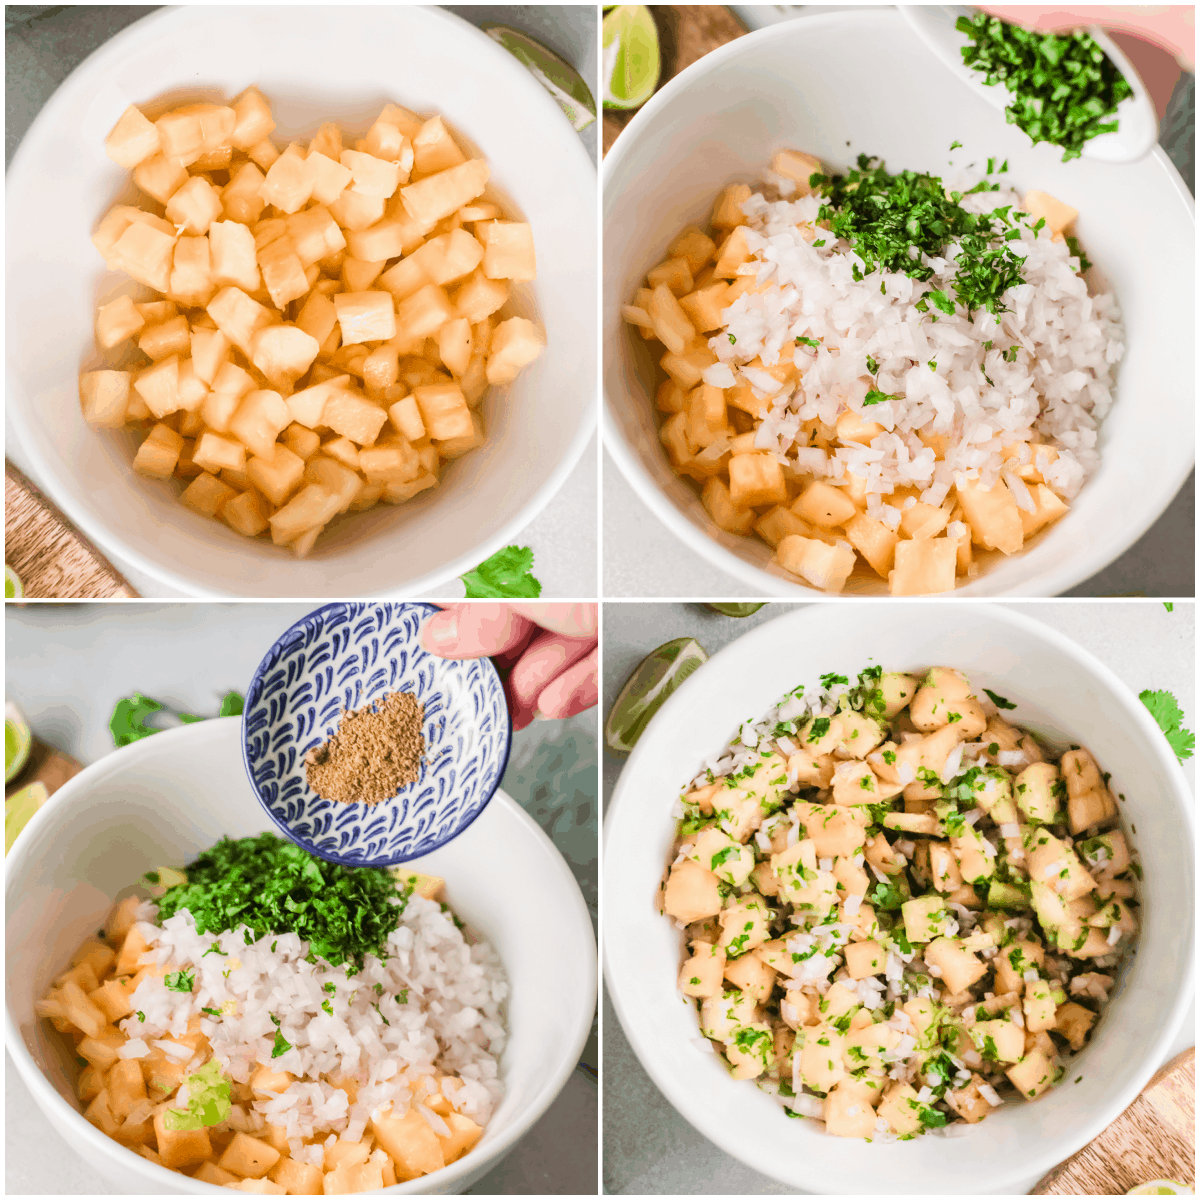 image collage showing the steps for making pineapple salsa